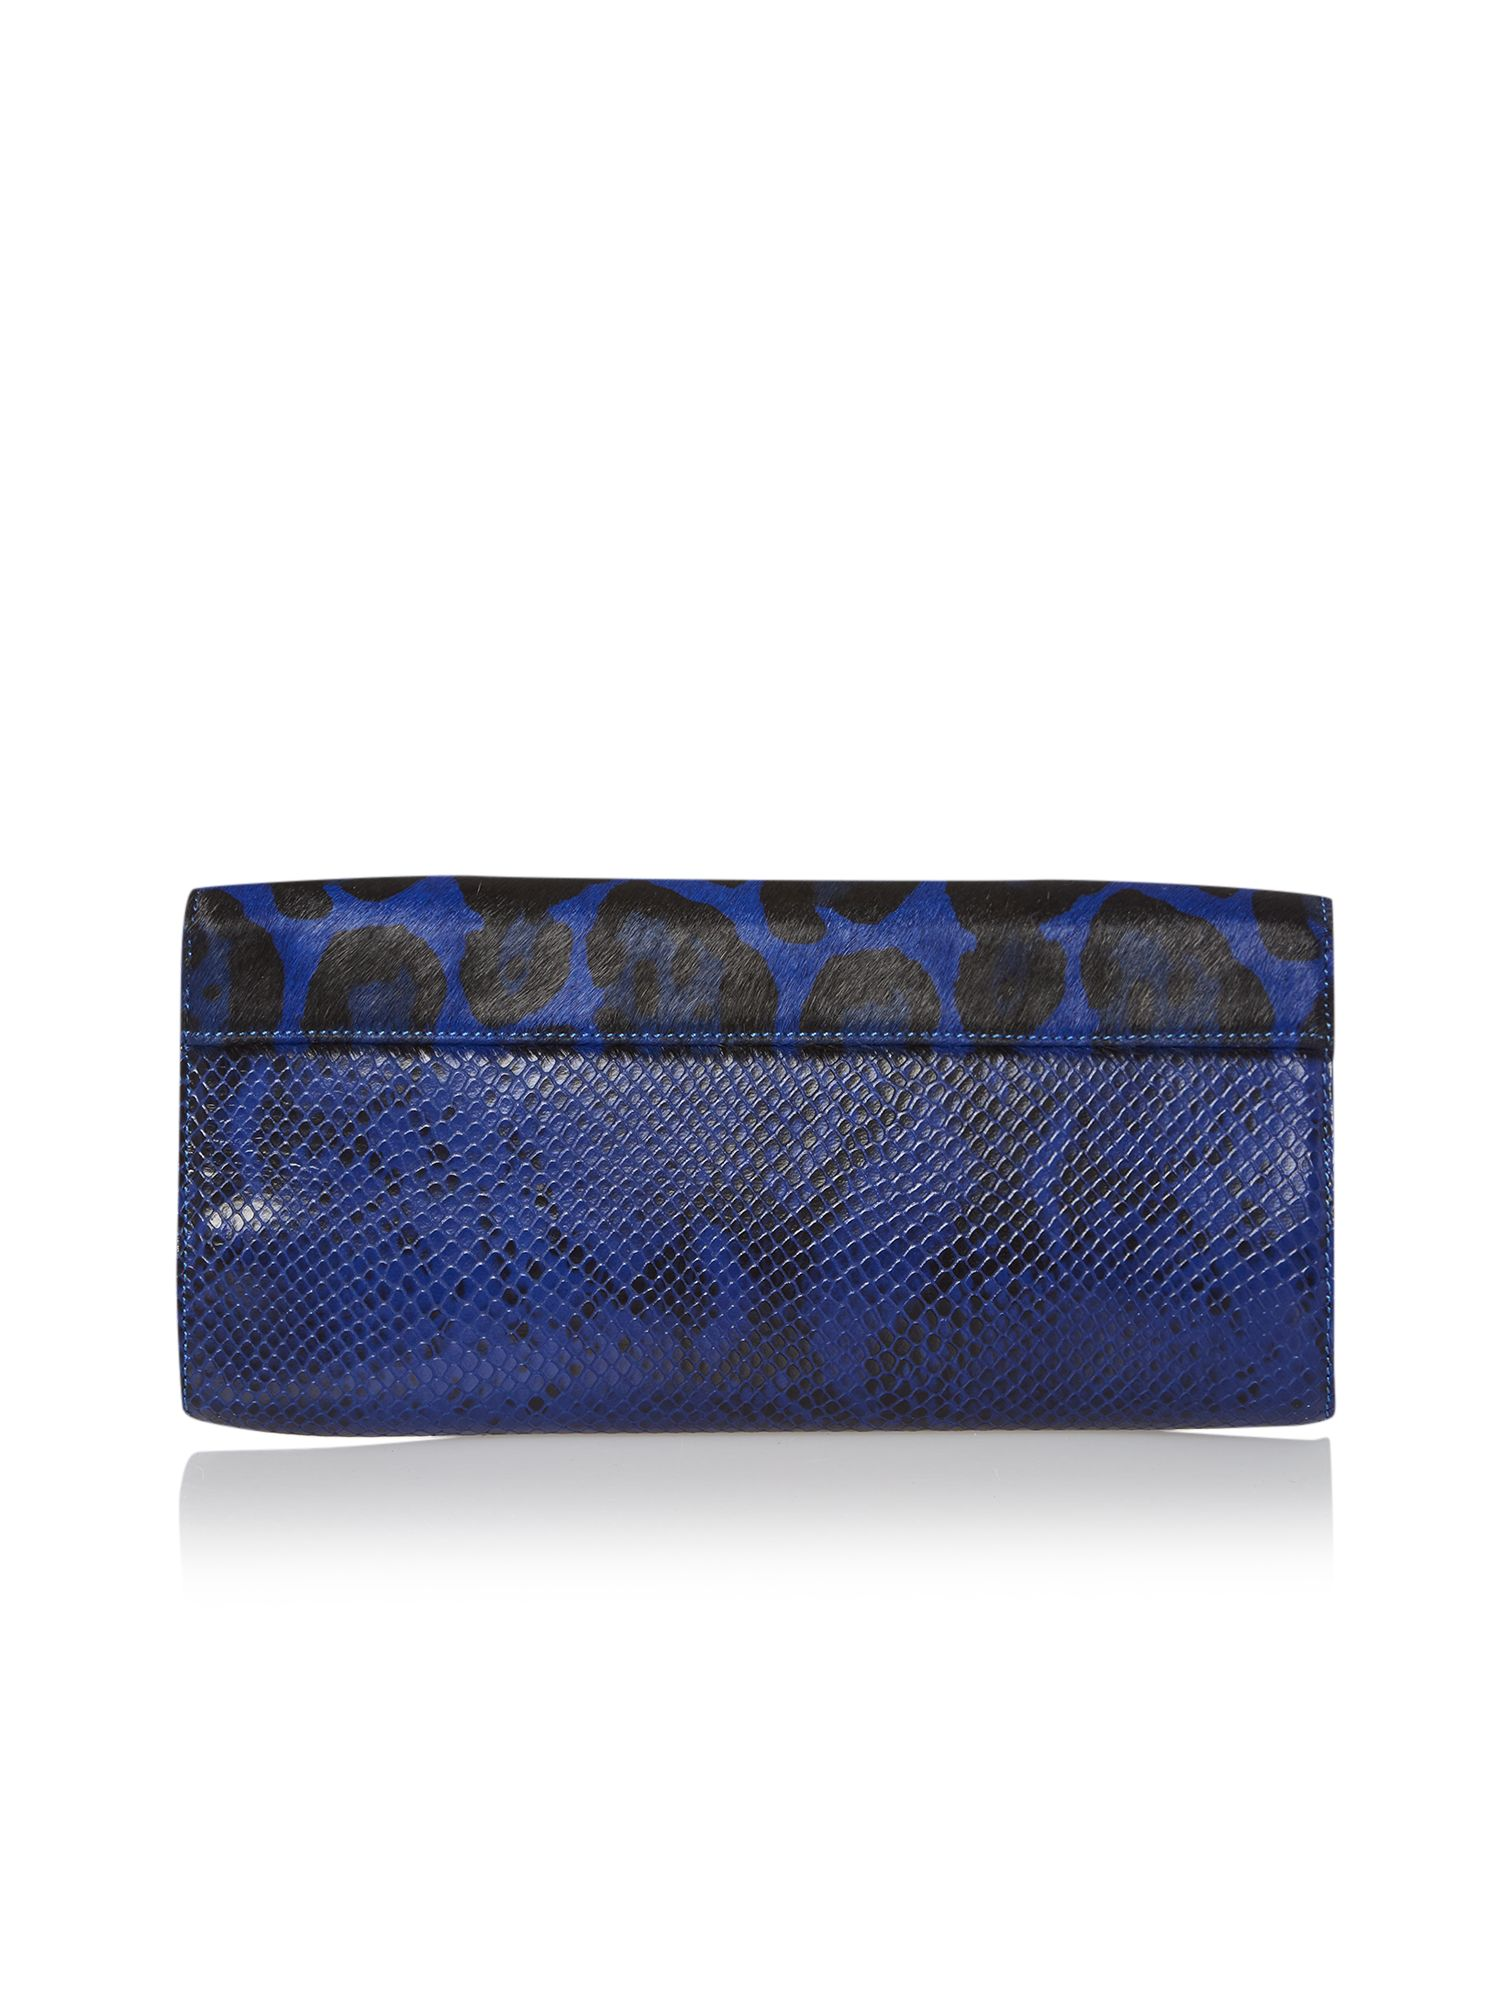 Blue animal print clutch bag